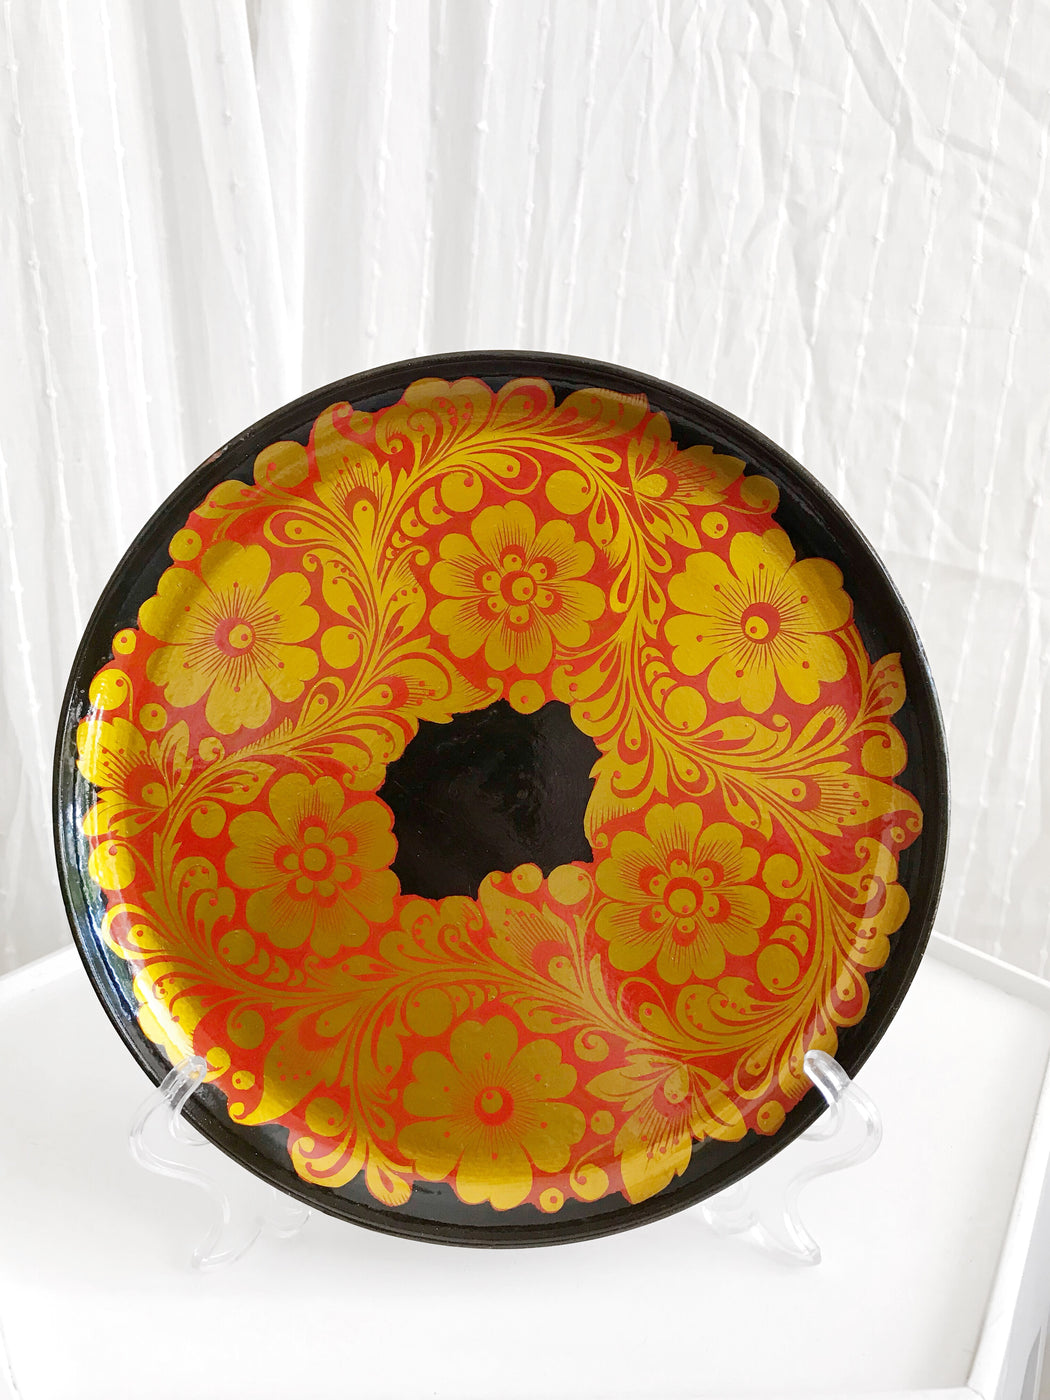 Russian Red and Gold Floral Plate | Storytellers Workshop